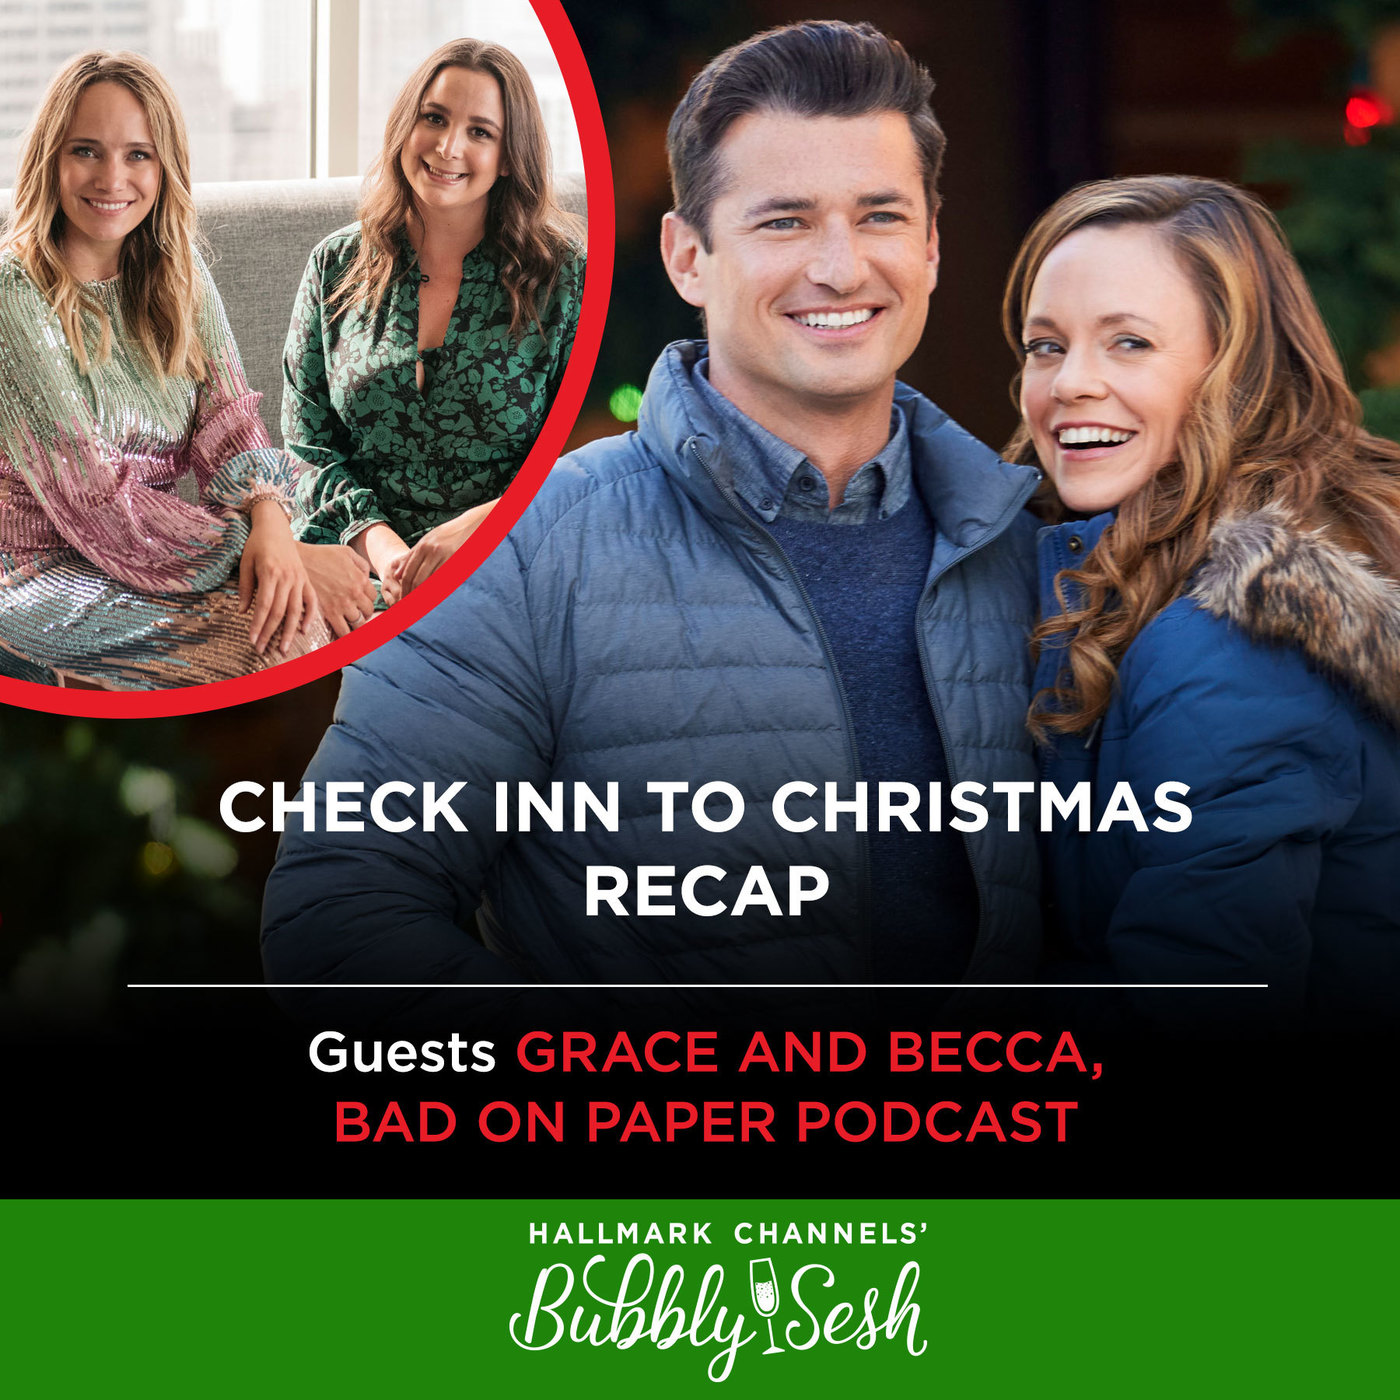 Check Inn to Christmas Recap with Grace and Becca, Bad on Paper